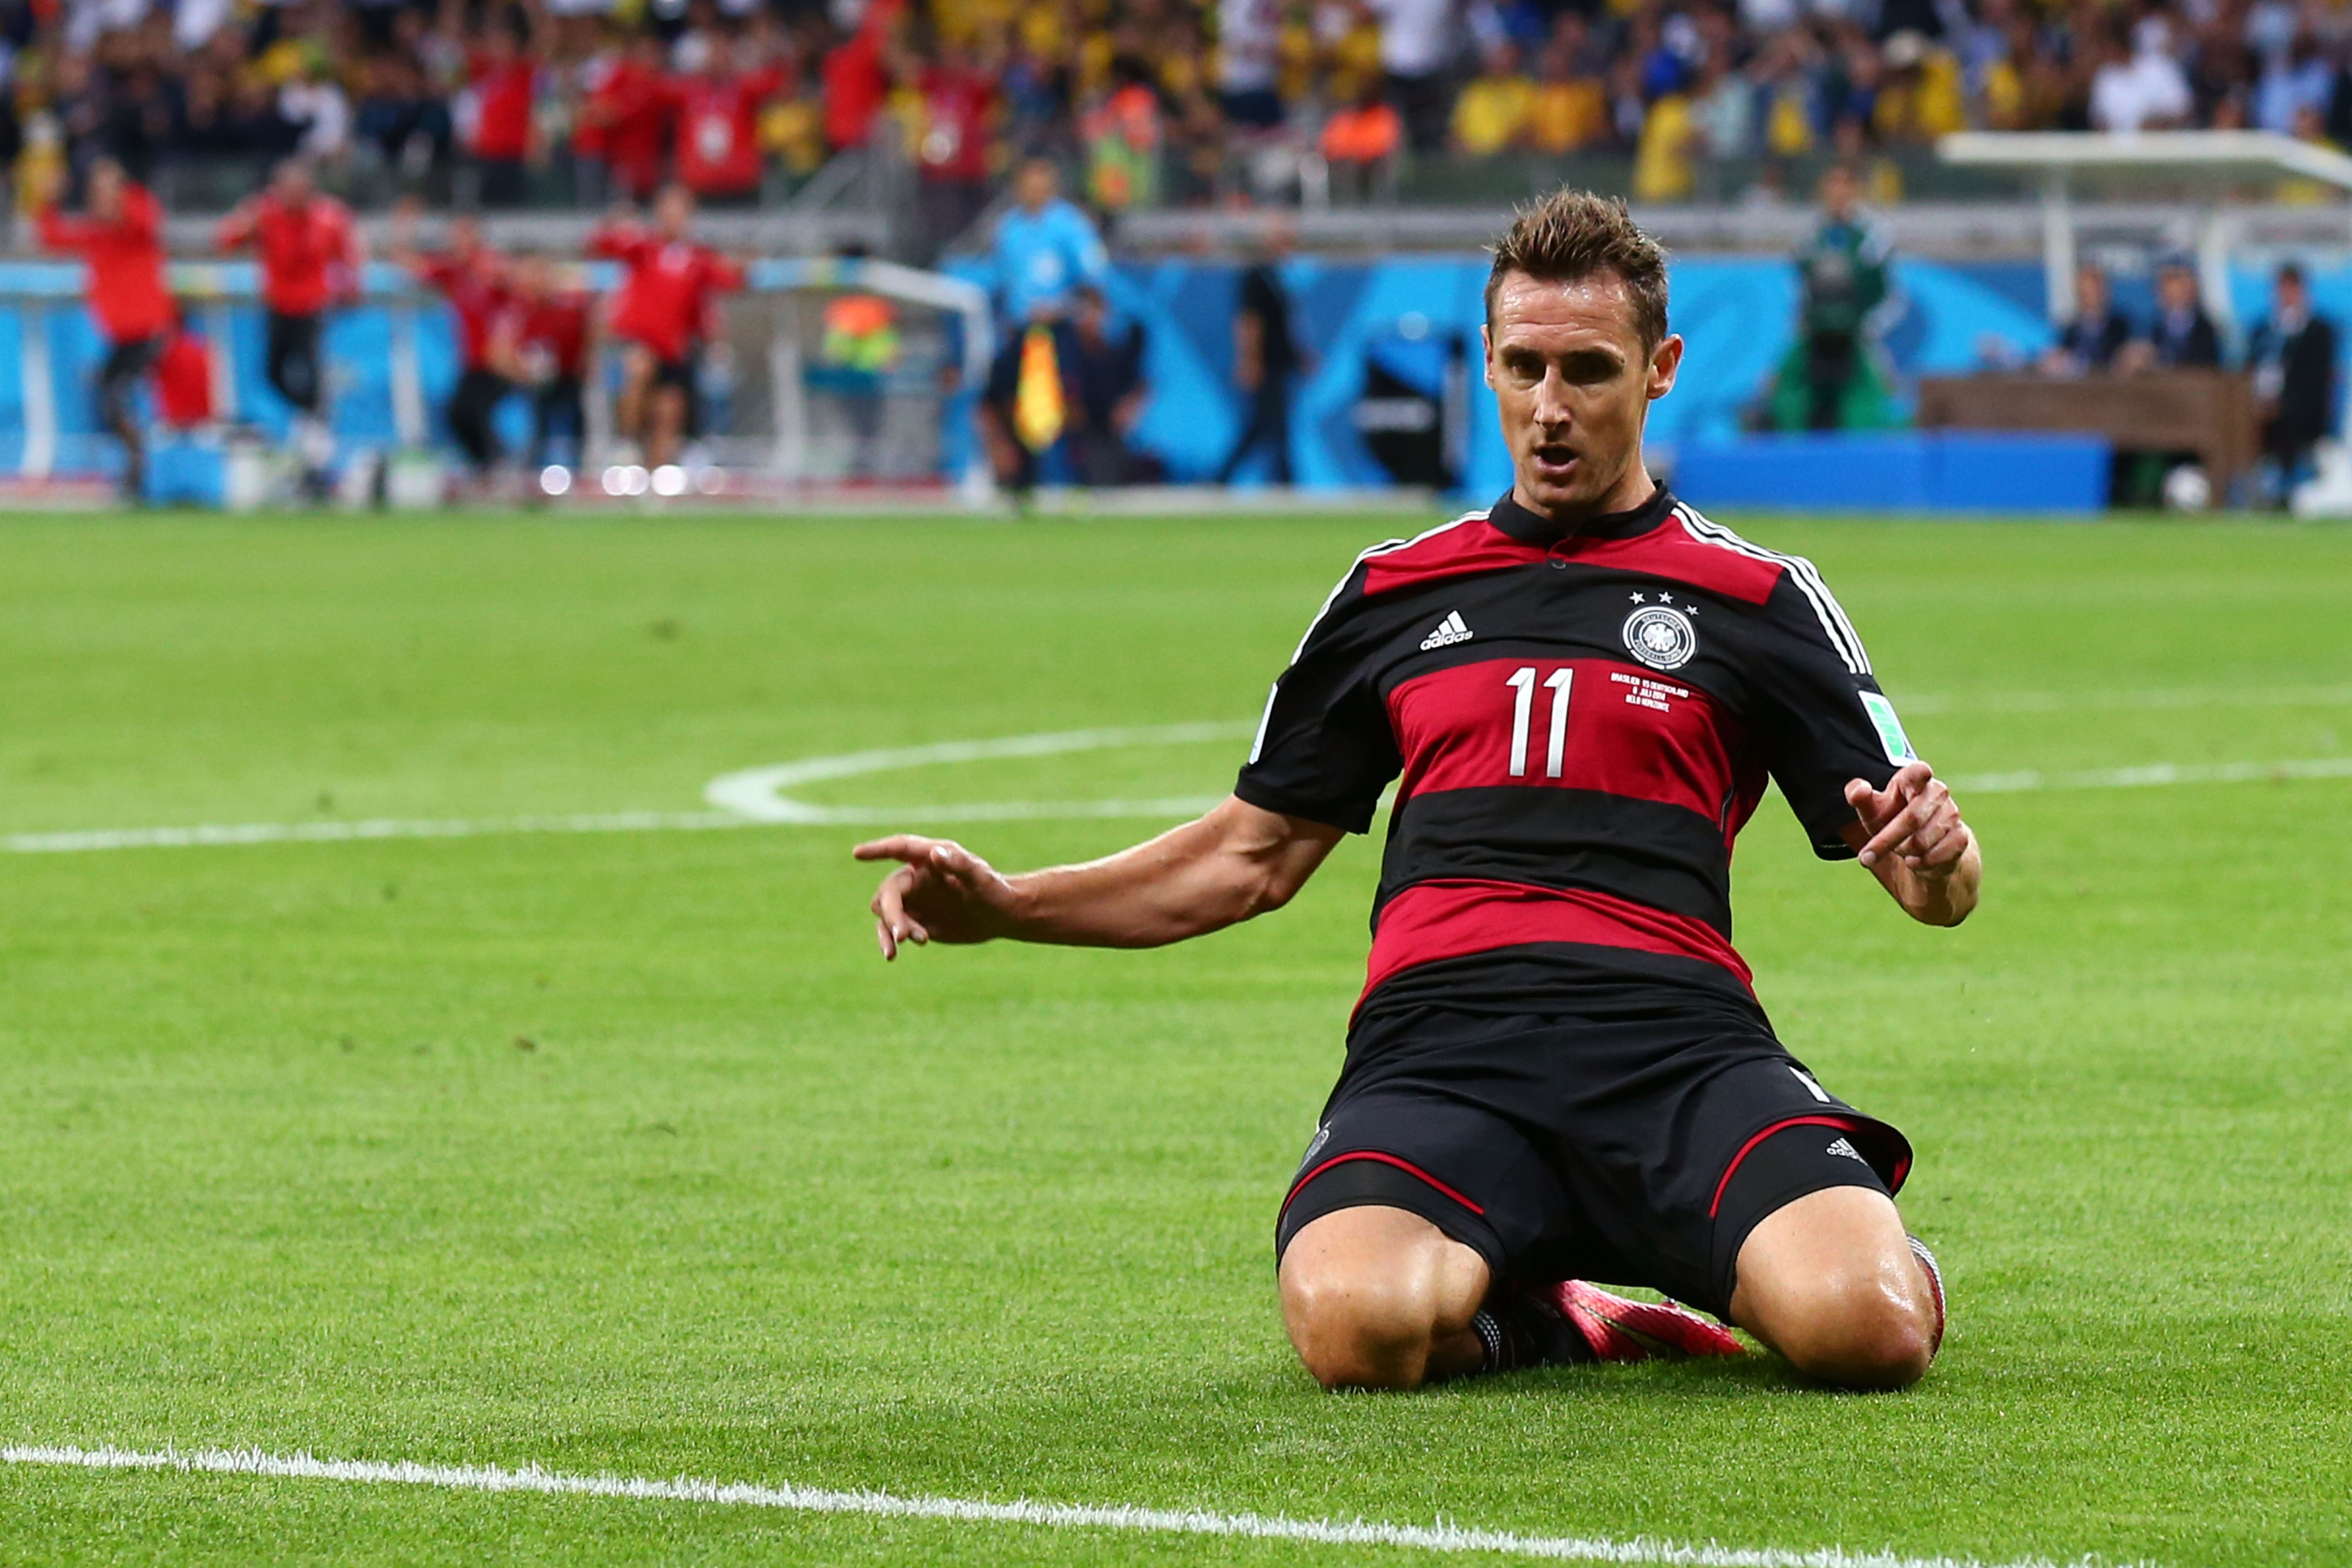 He's not the best player in World Cup history, but he's now the greatest goal scorer.